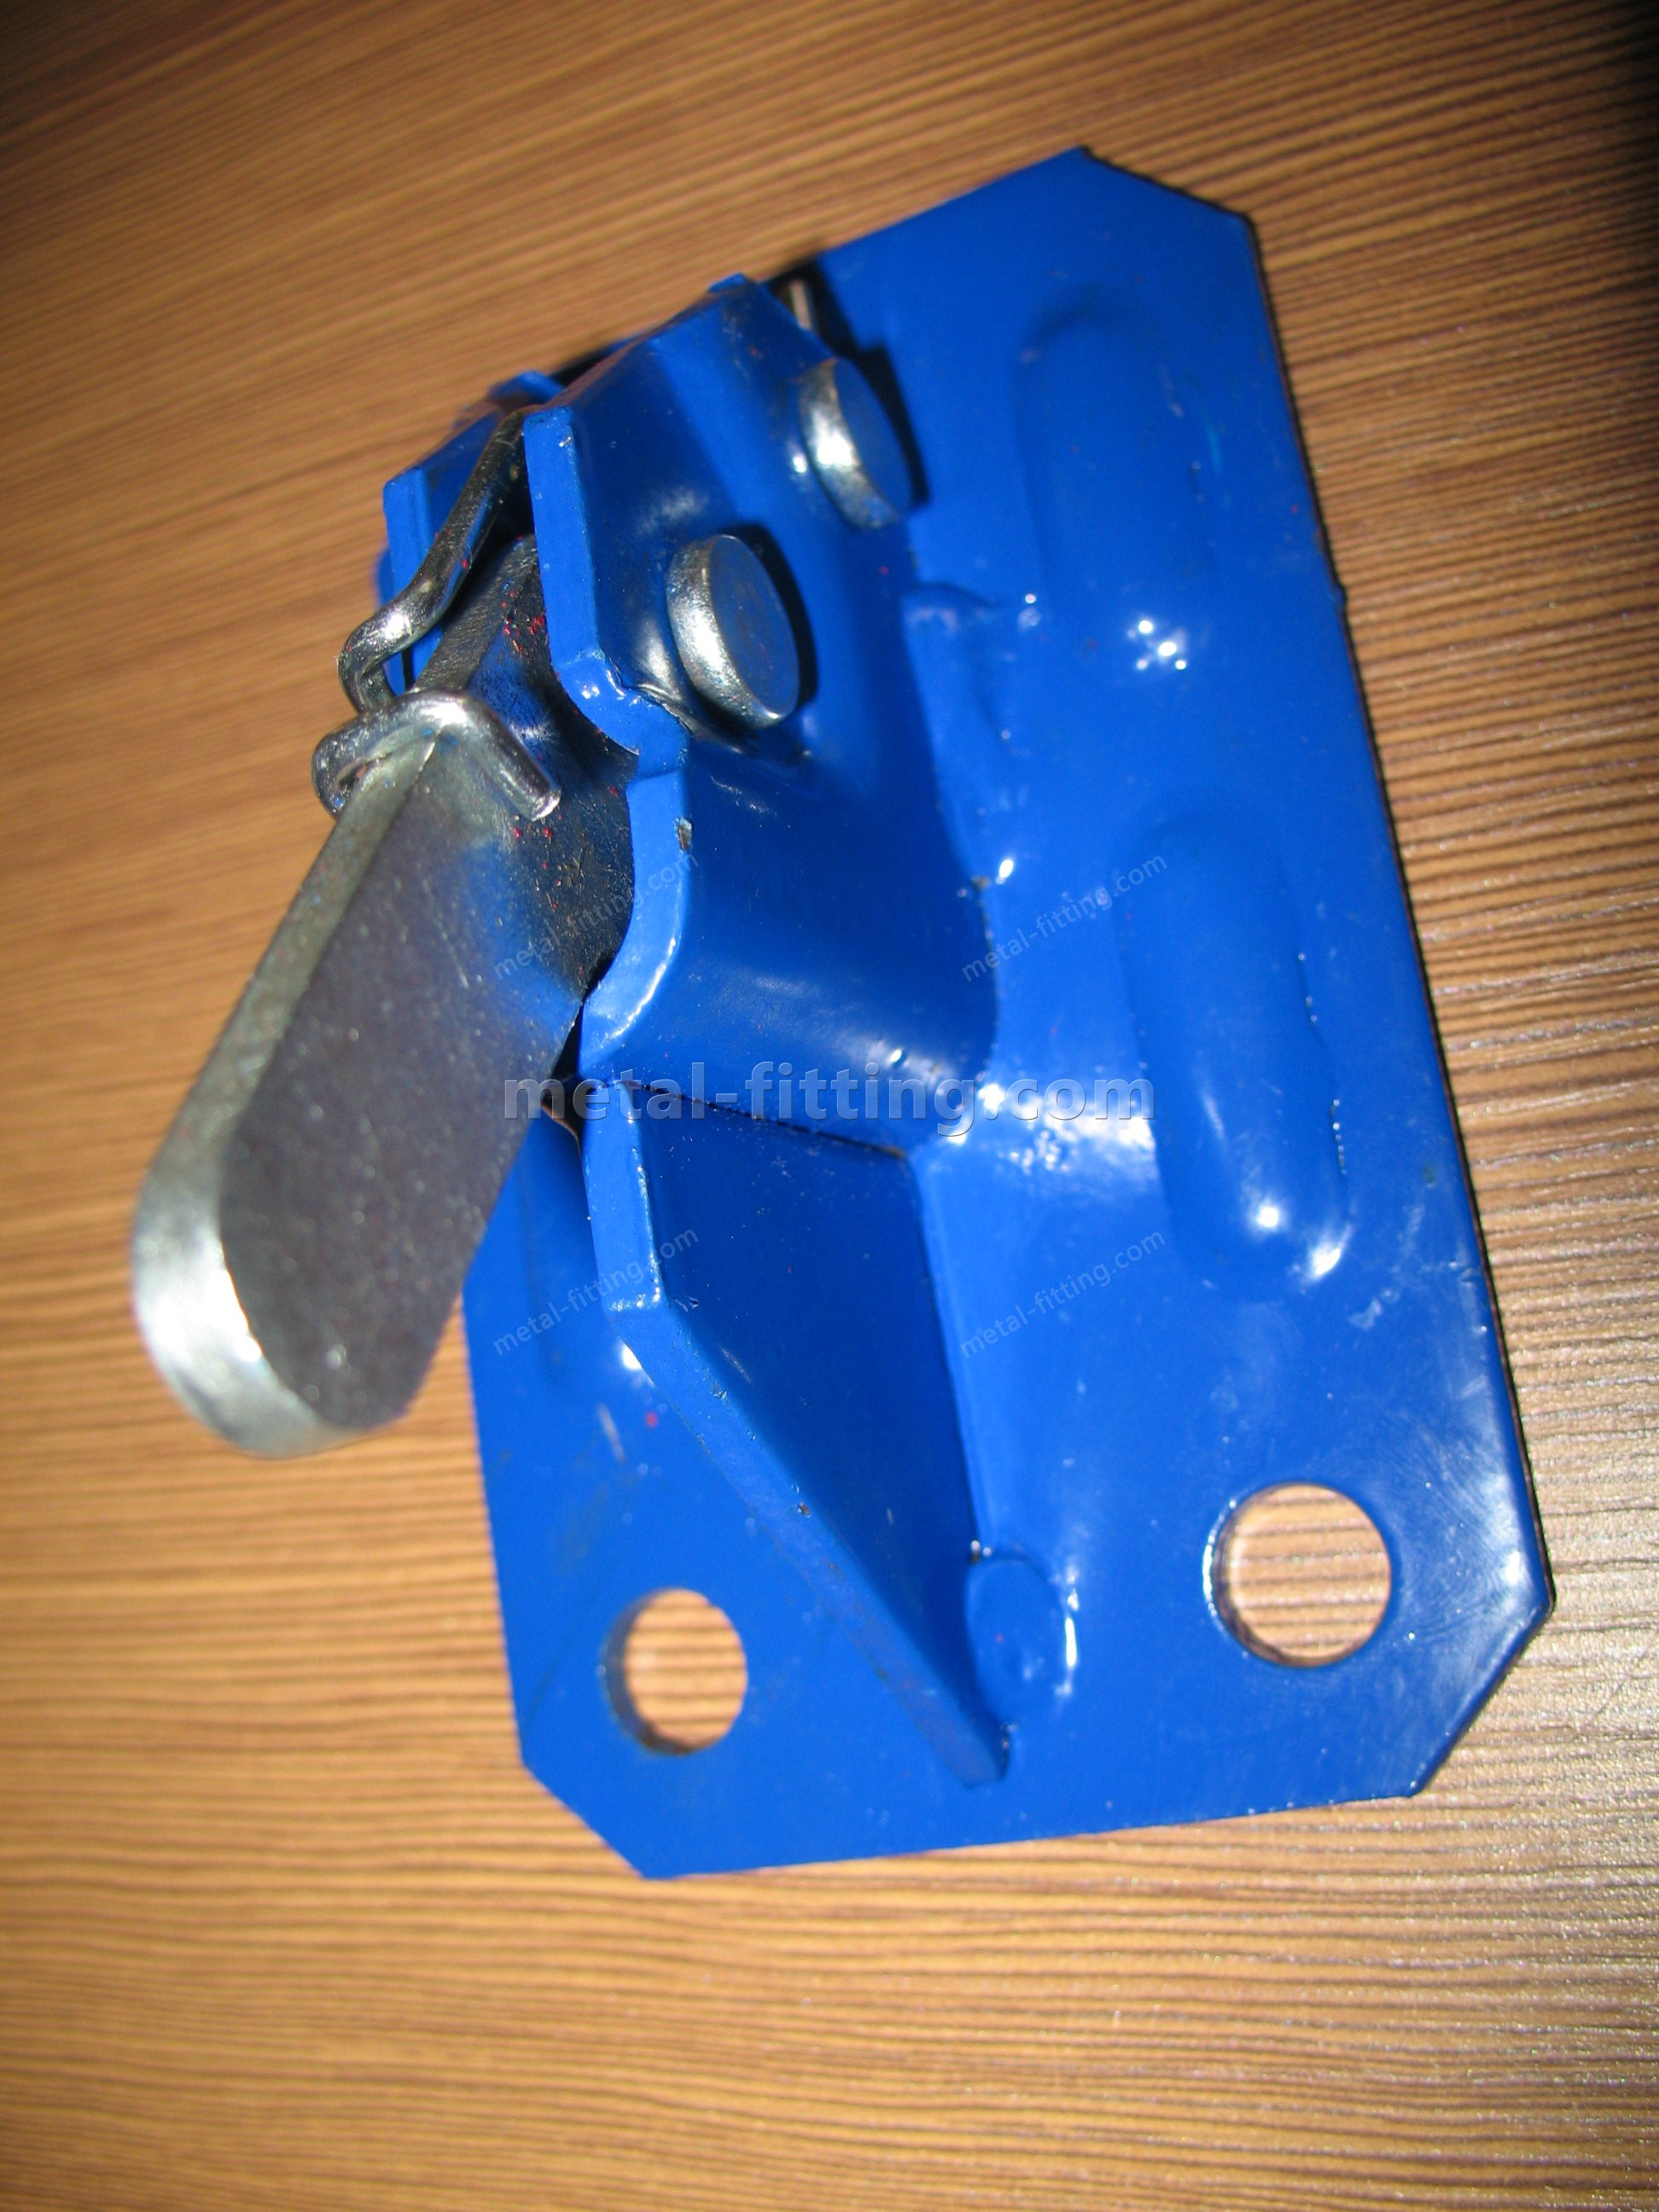 Pressed wedge clamp 45#steel  Q215 building fitting-33KG